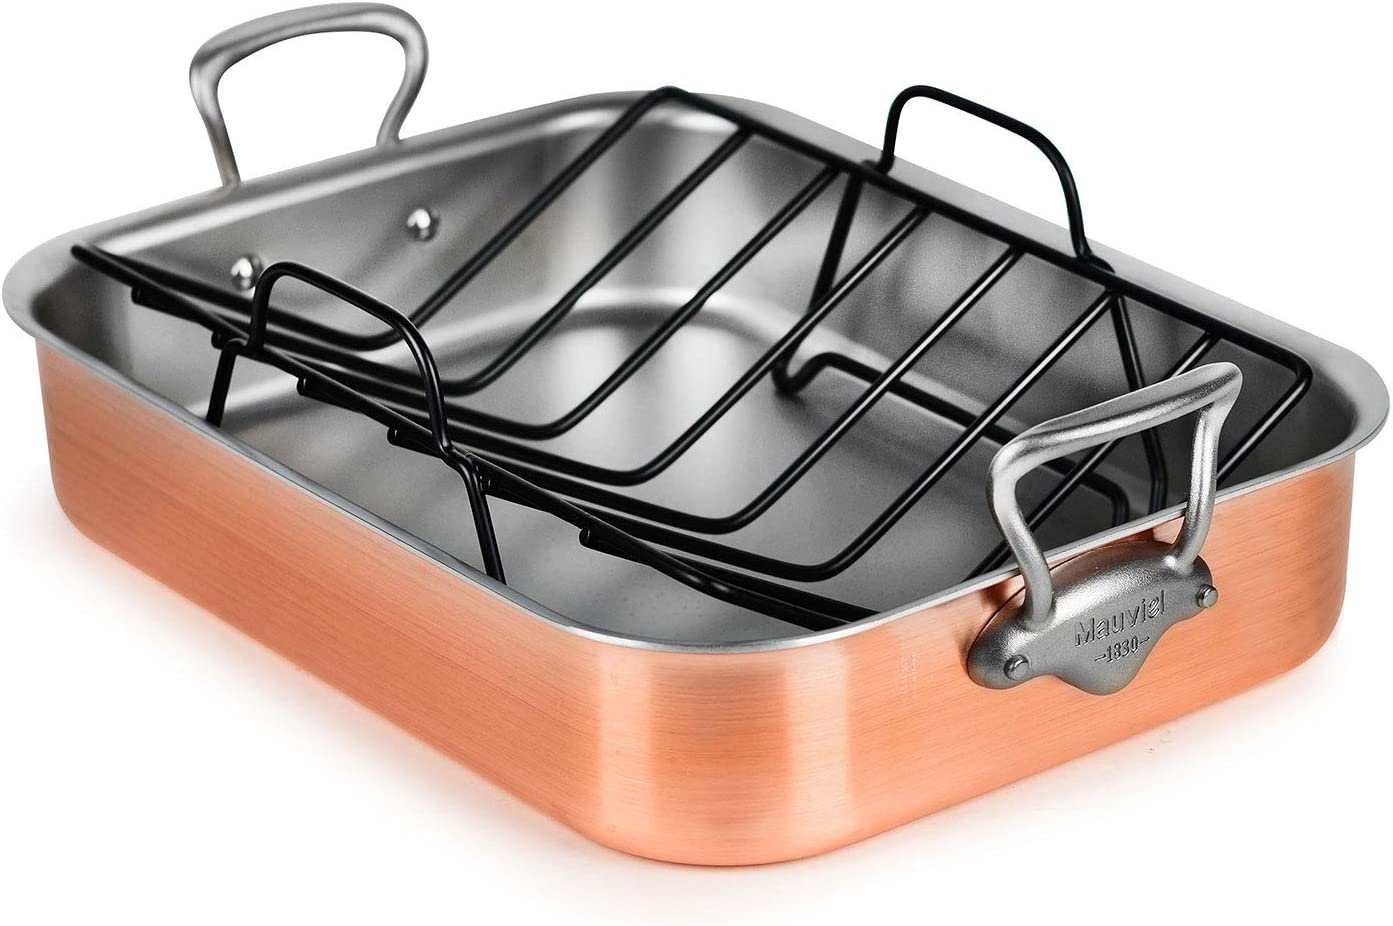 Mauviel Brushed Copper Roasting Ranking TOP14 Pan in Made Fees free France - Stainless